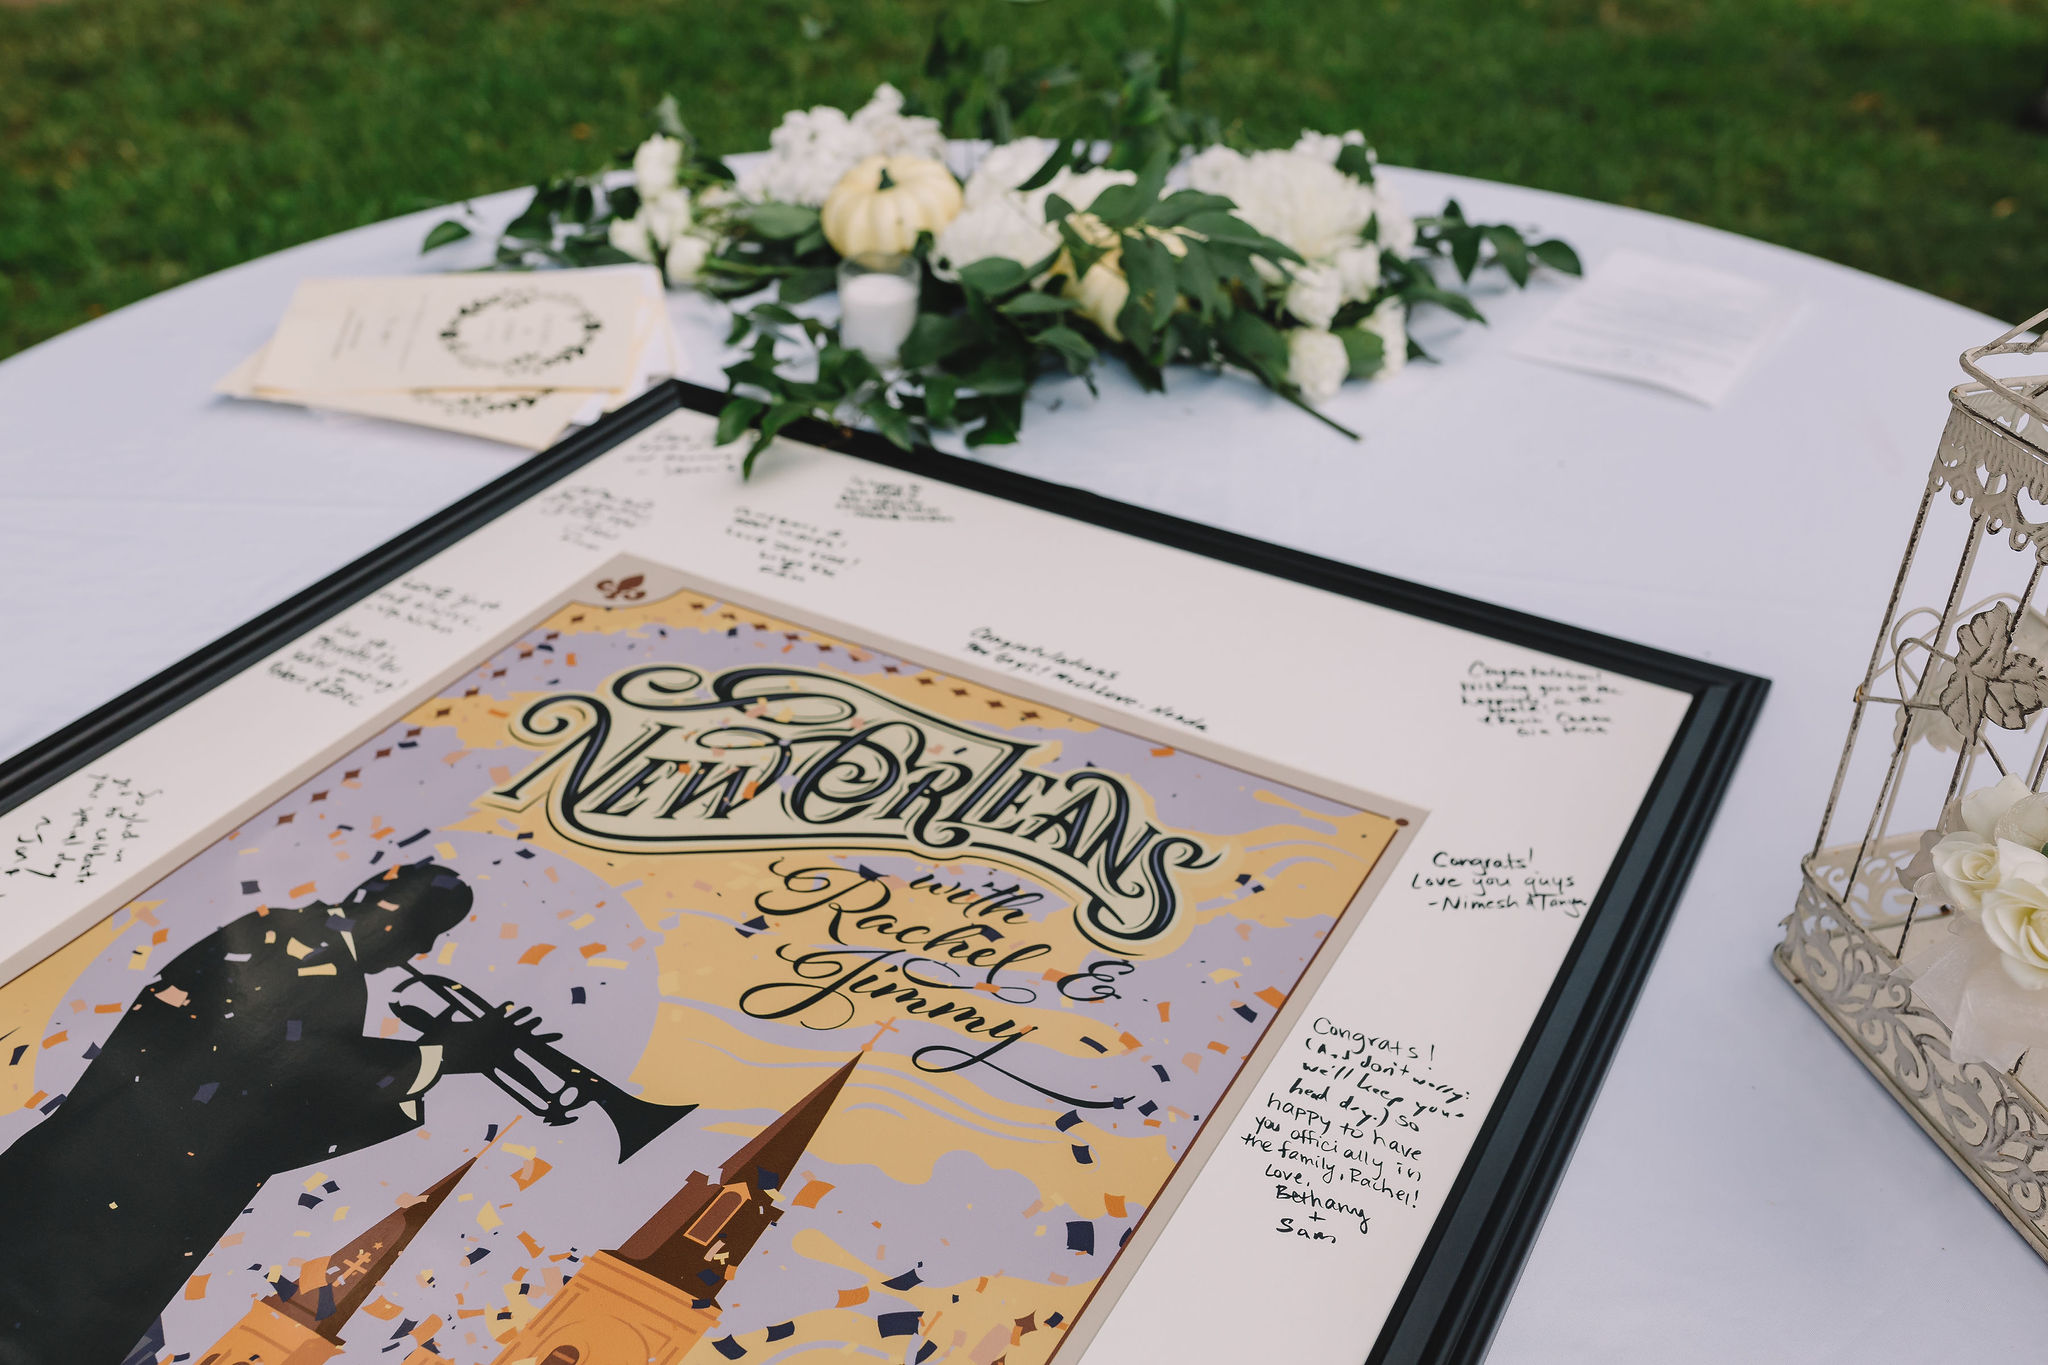 The couple opted for a non-traditional guest book for their wedding. The best man designed the image on the framed print that was also used for the Save the Dates!